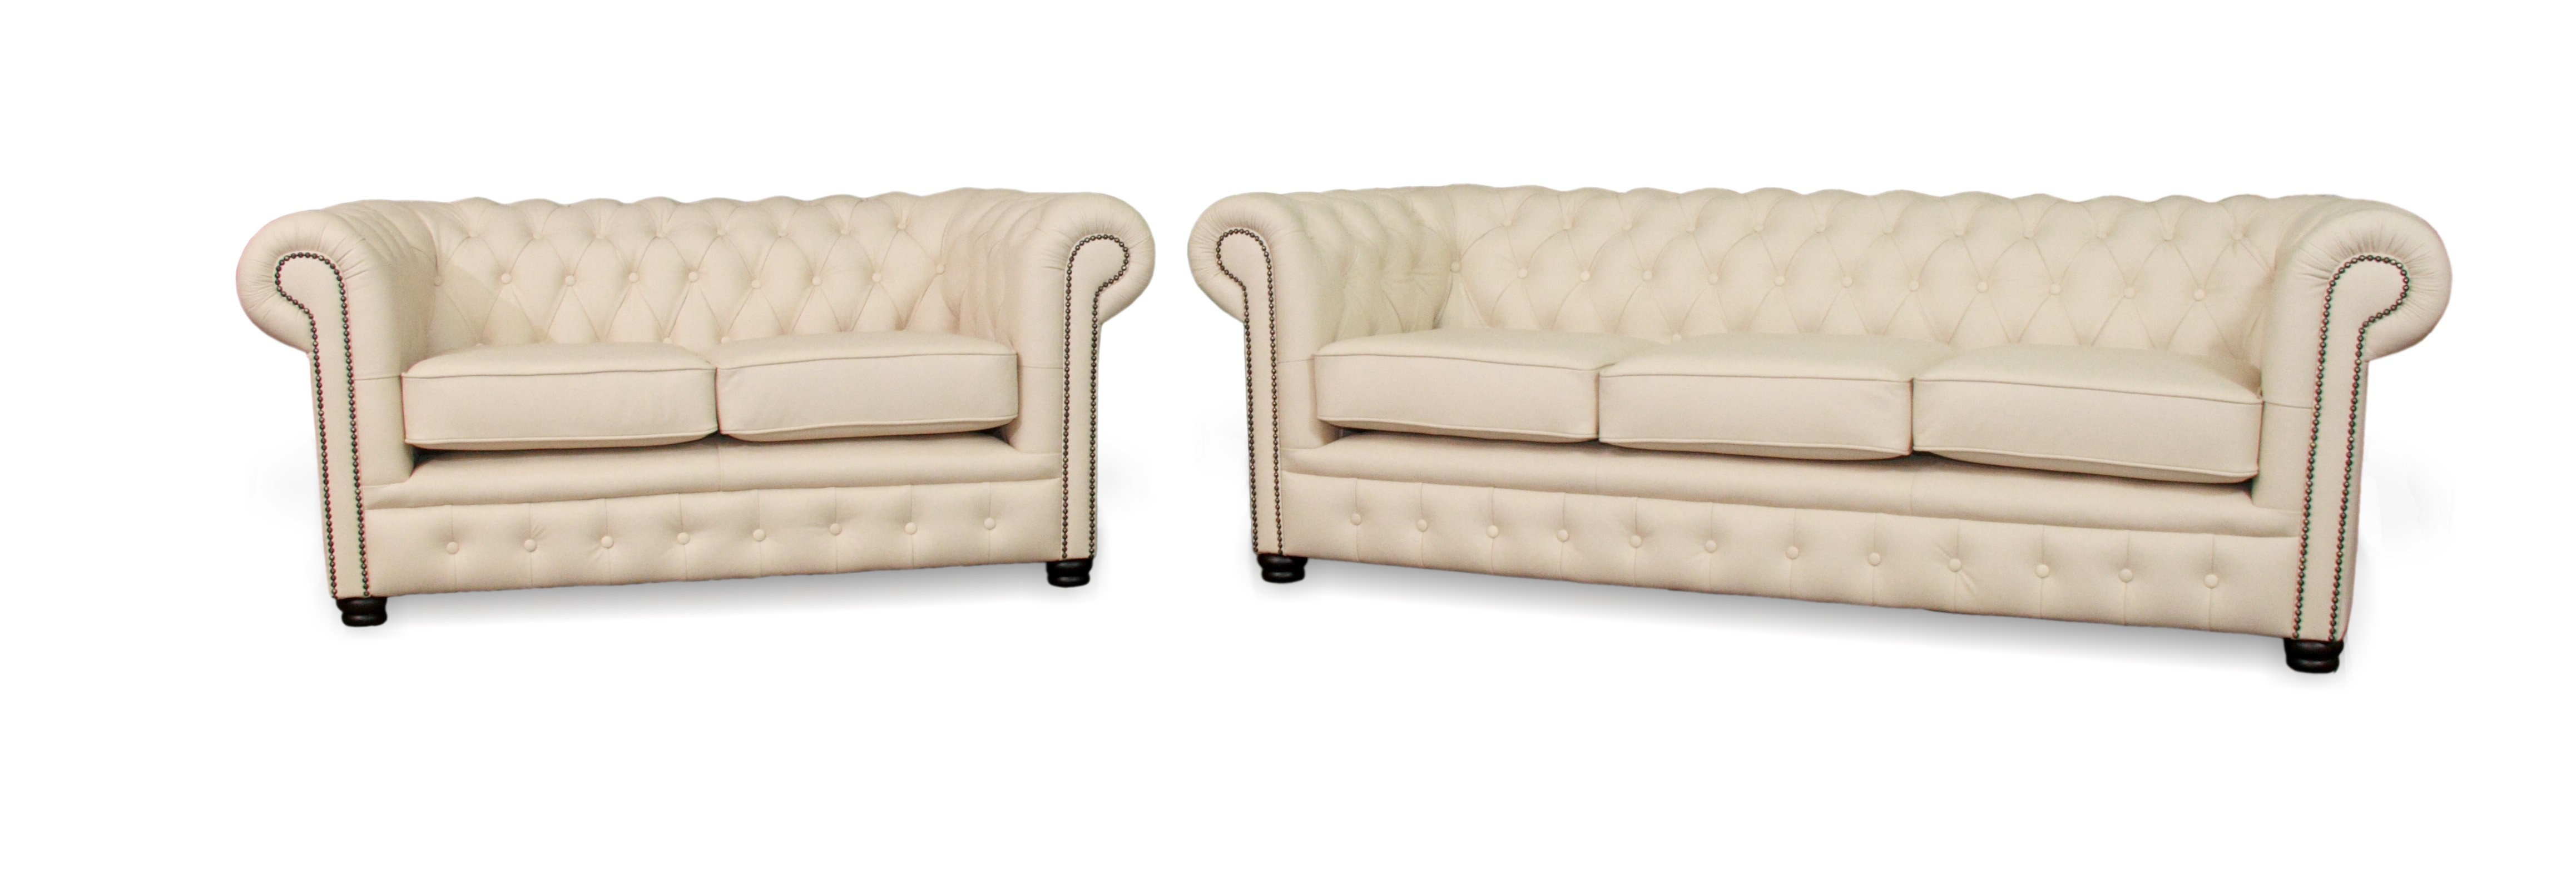 Essex Classic Chesterfield Sofa Leather Lounge